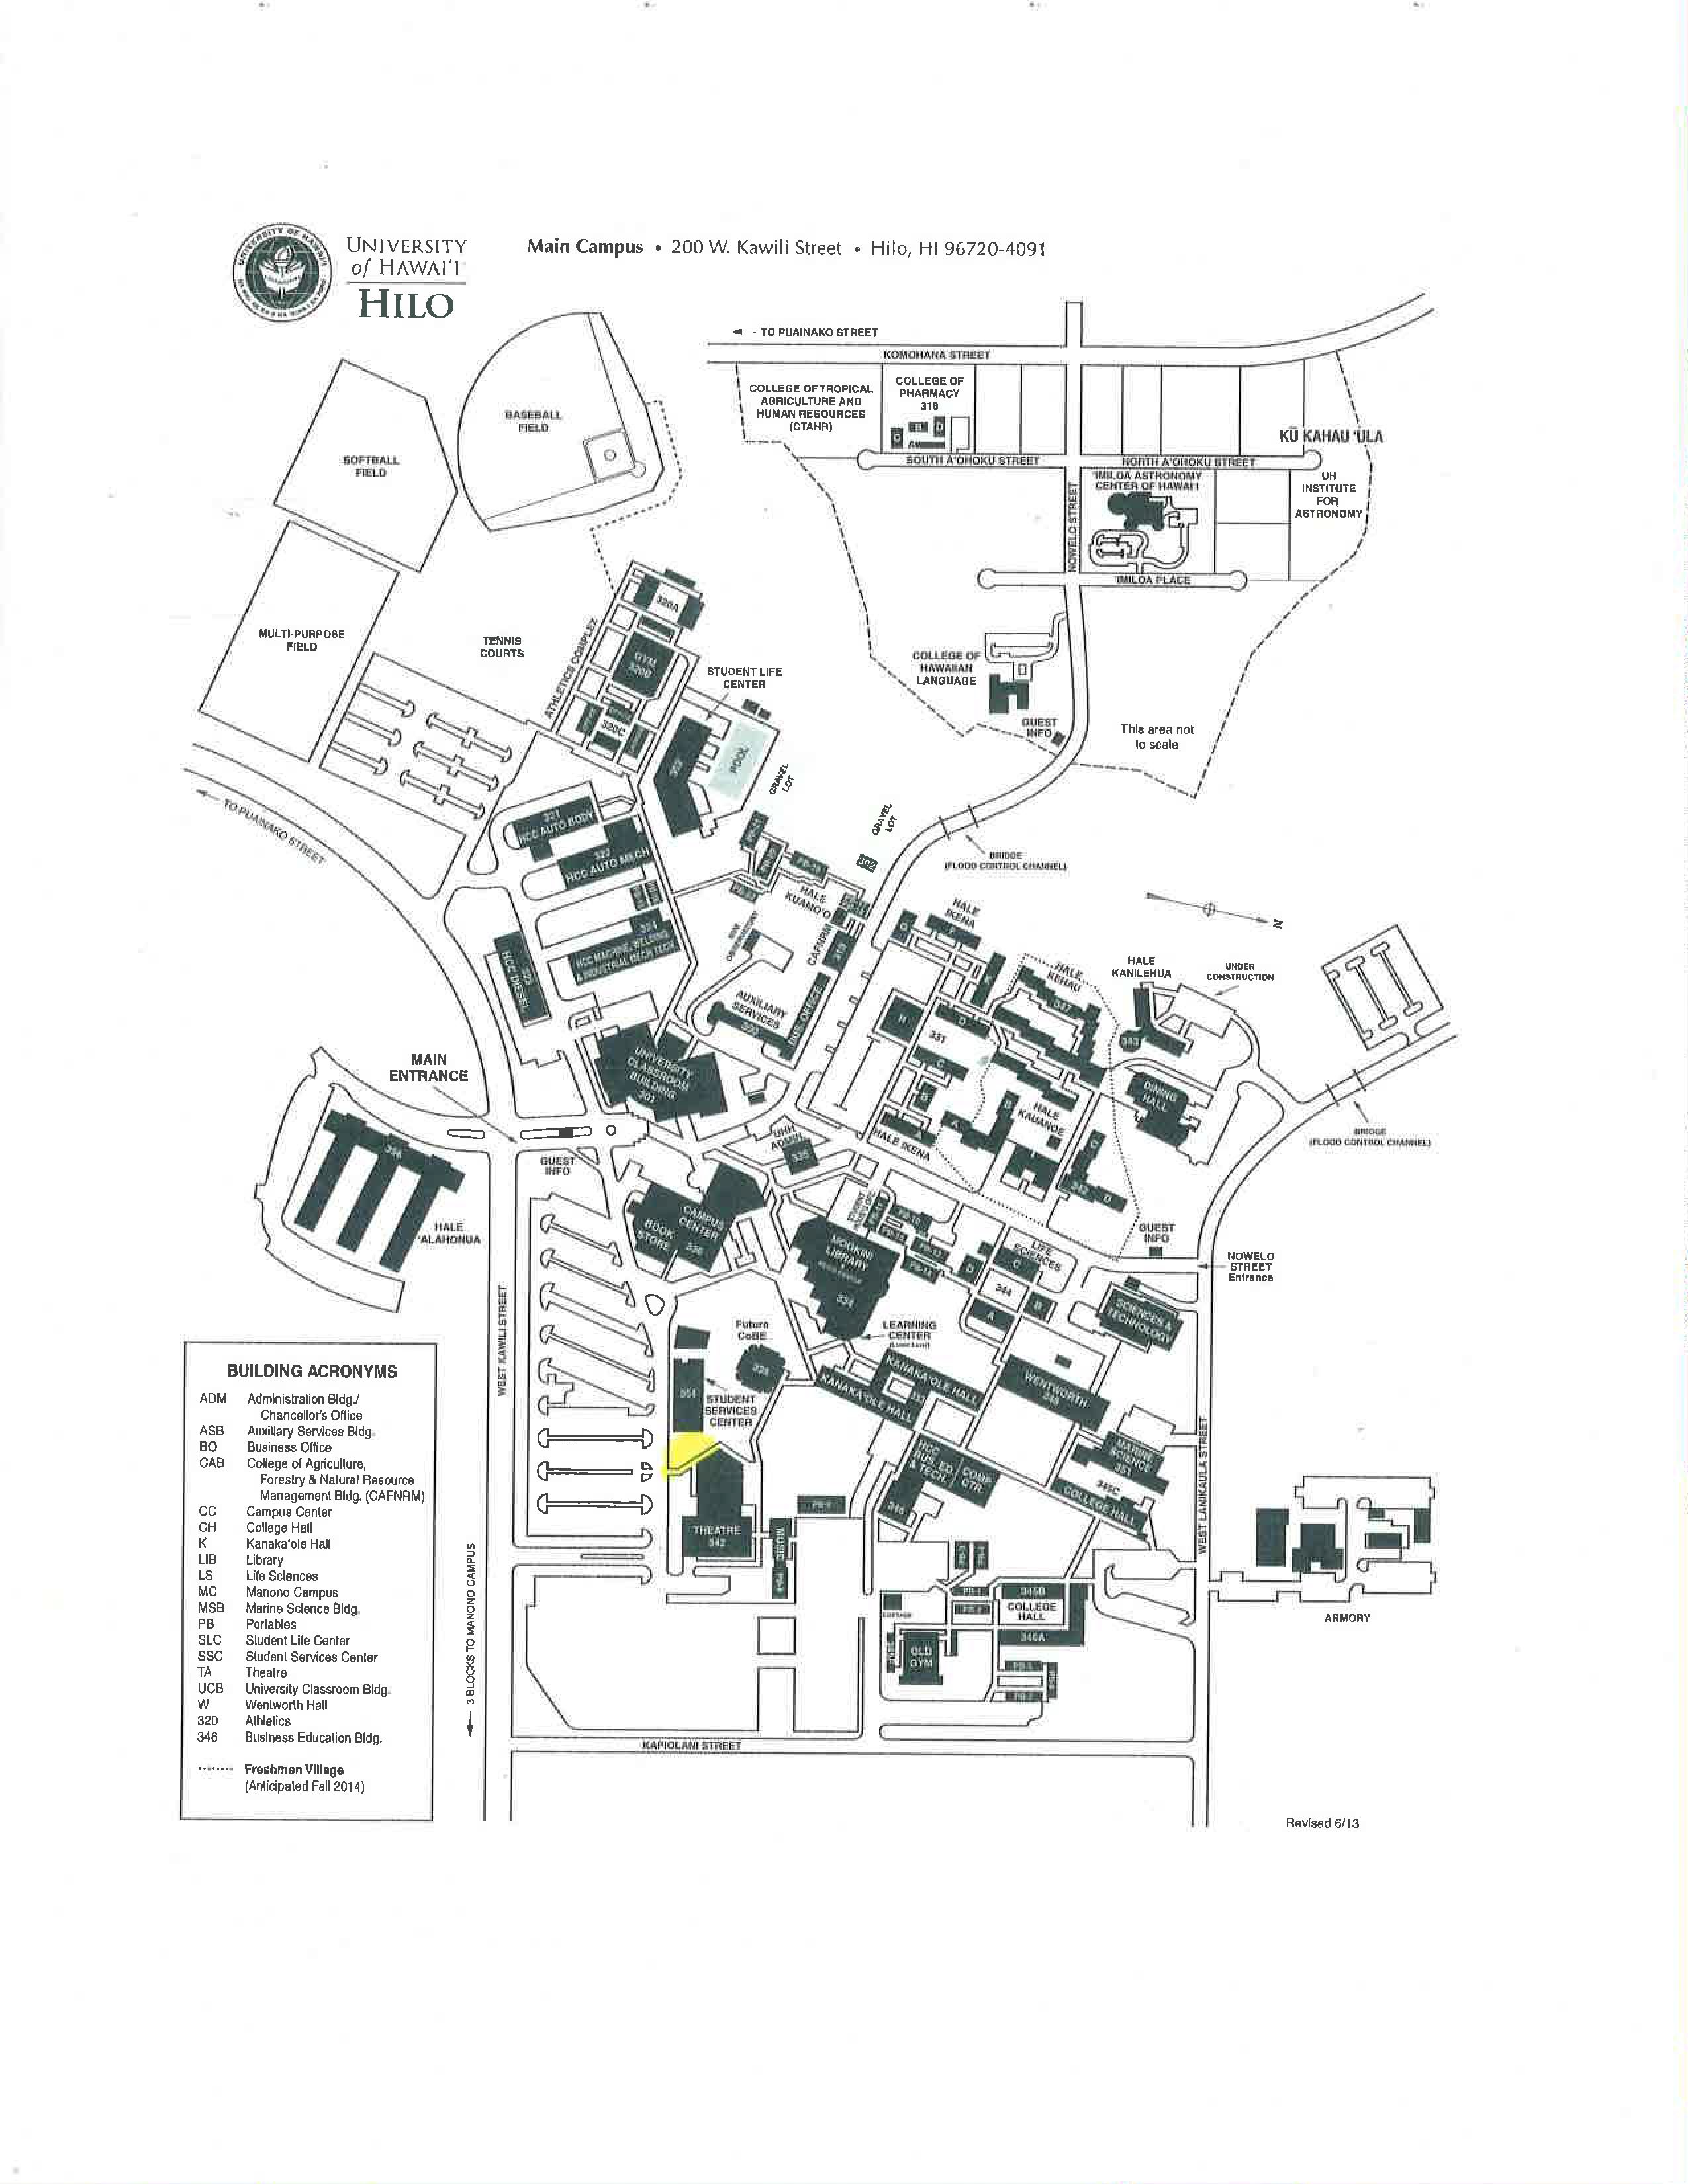 University Of Hawaii Hilo Campus Map Fire